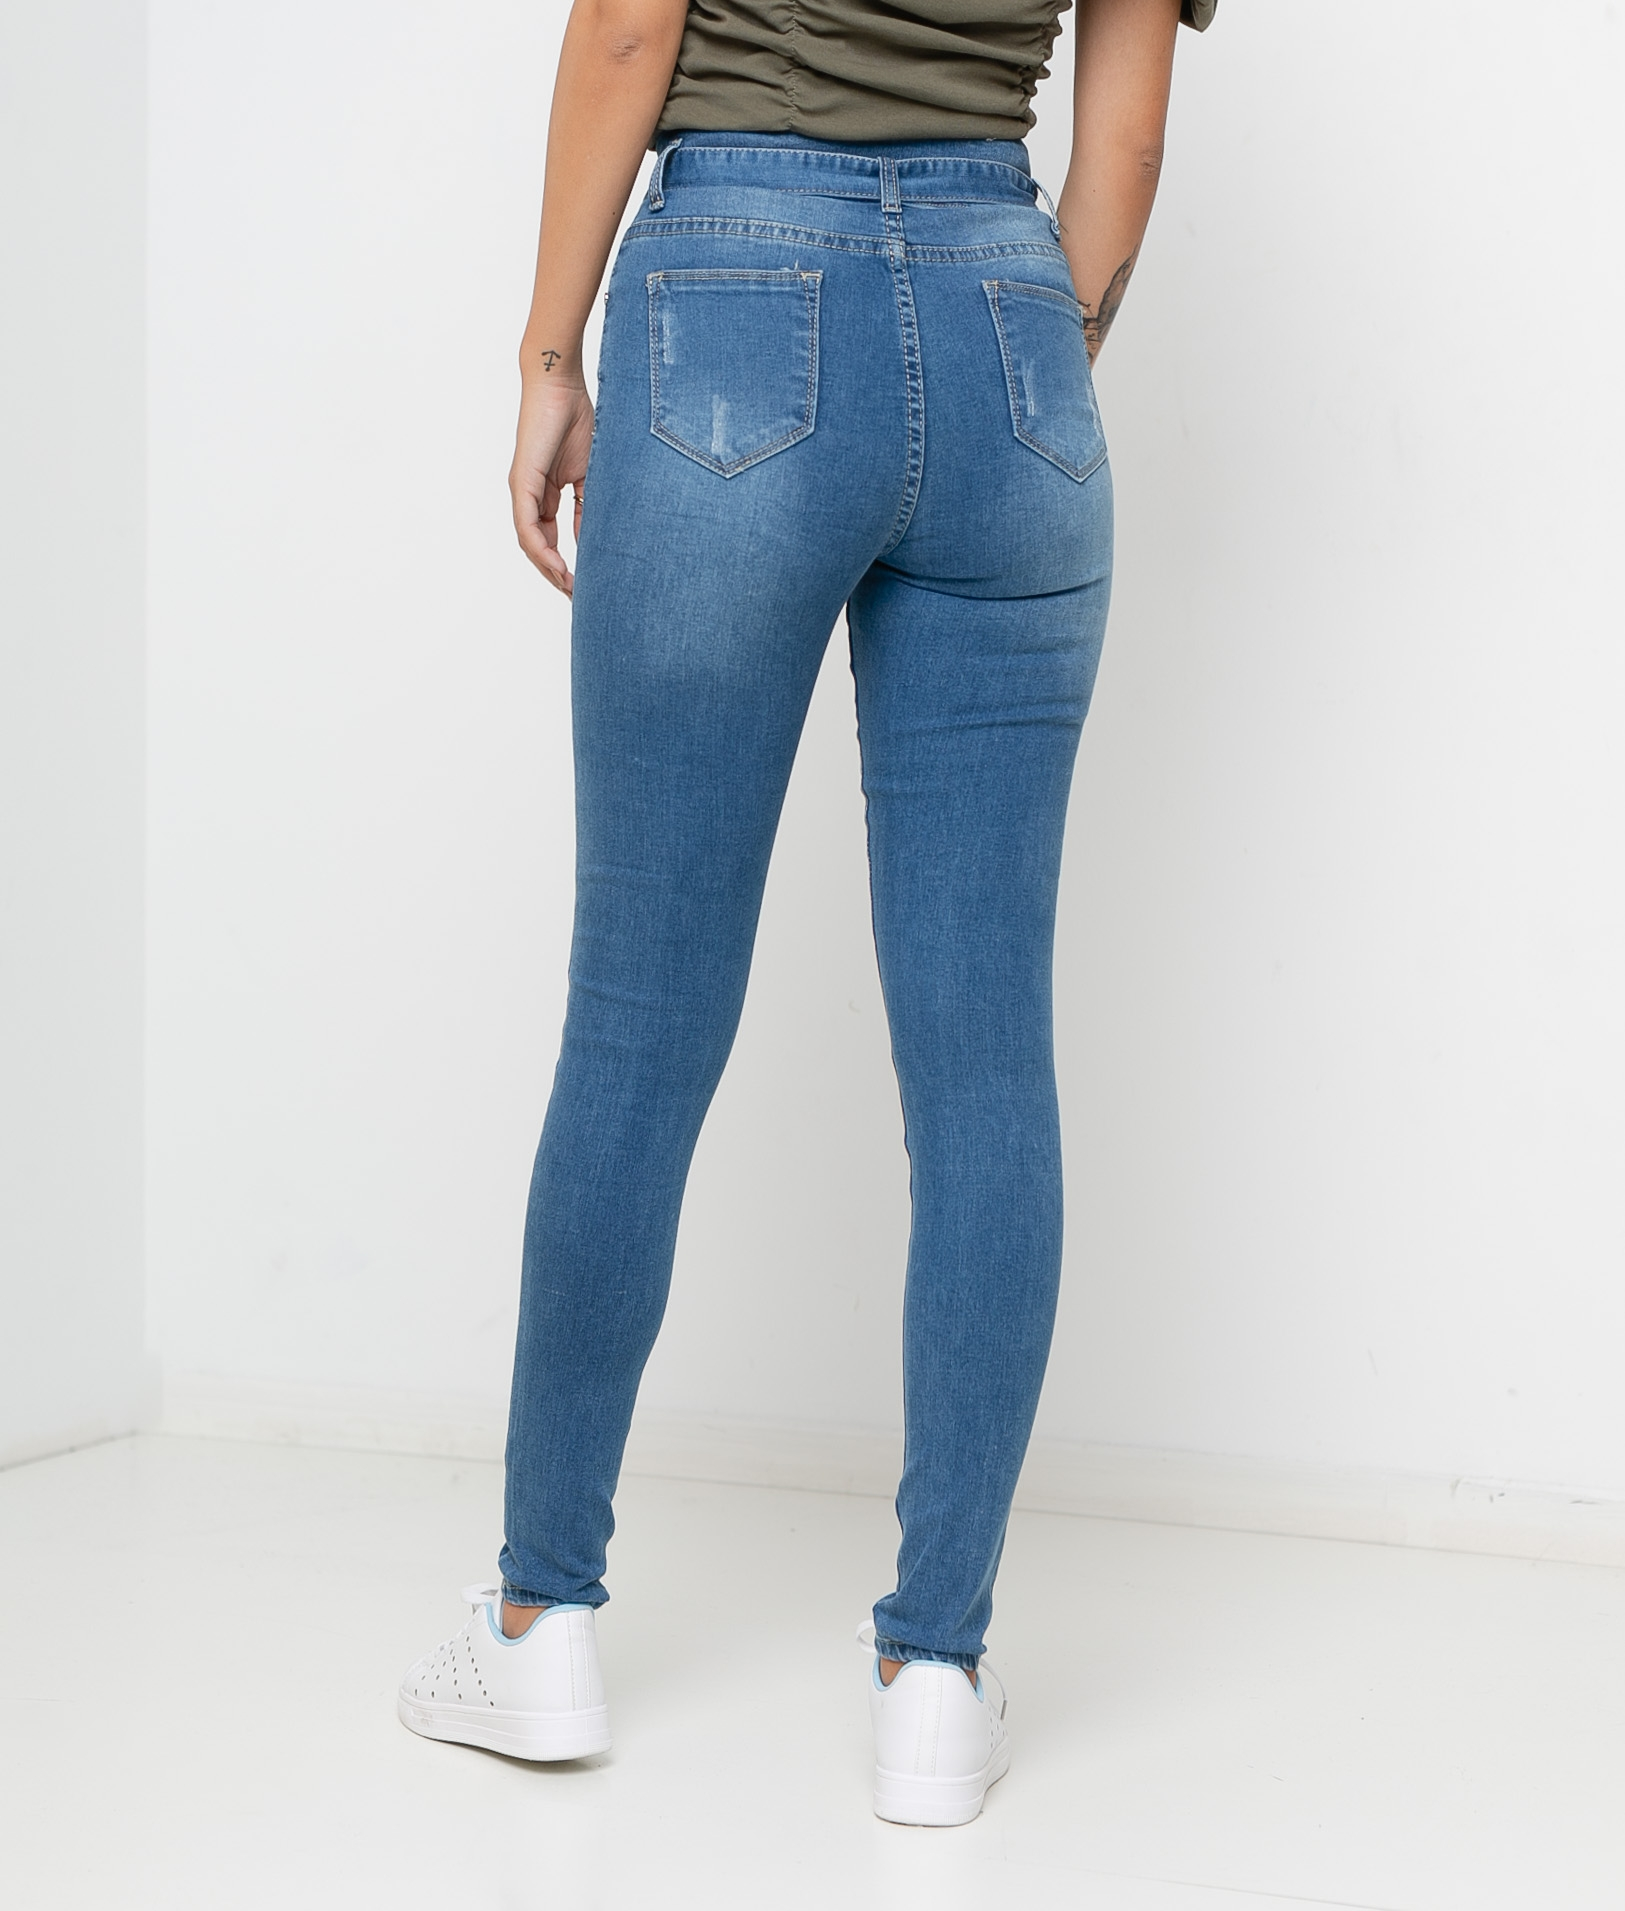 Aniram trousers - Denim